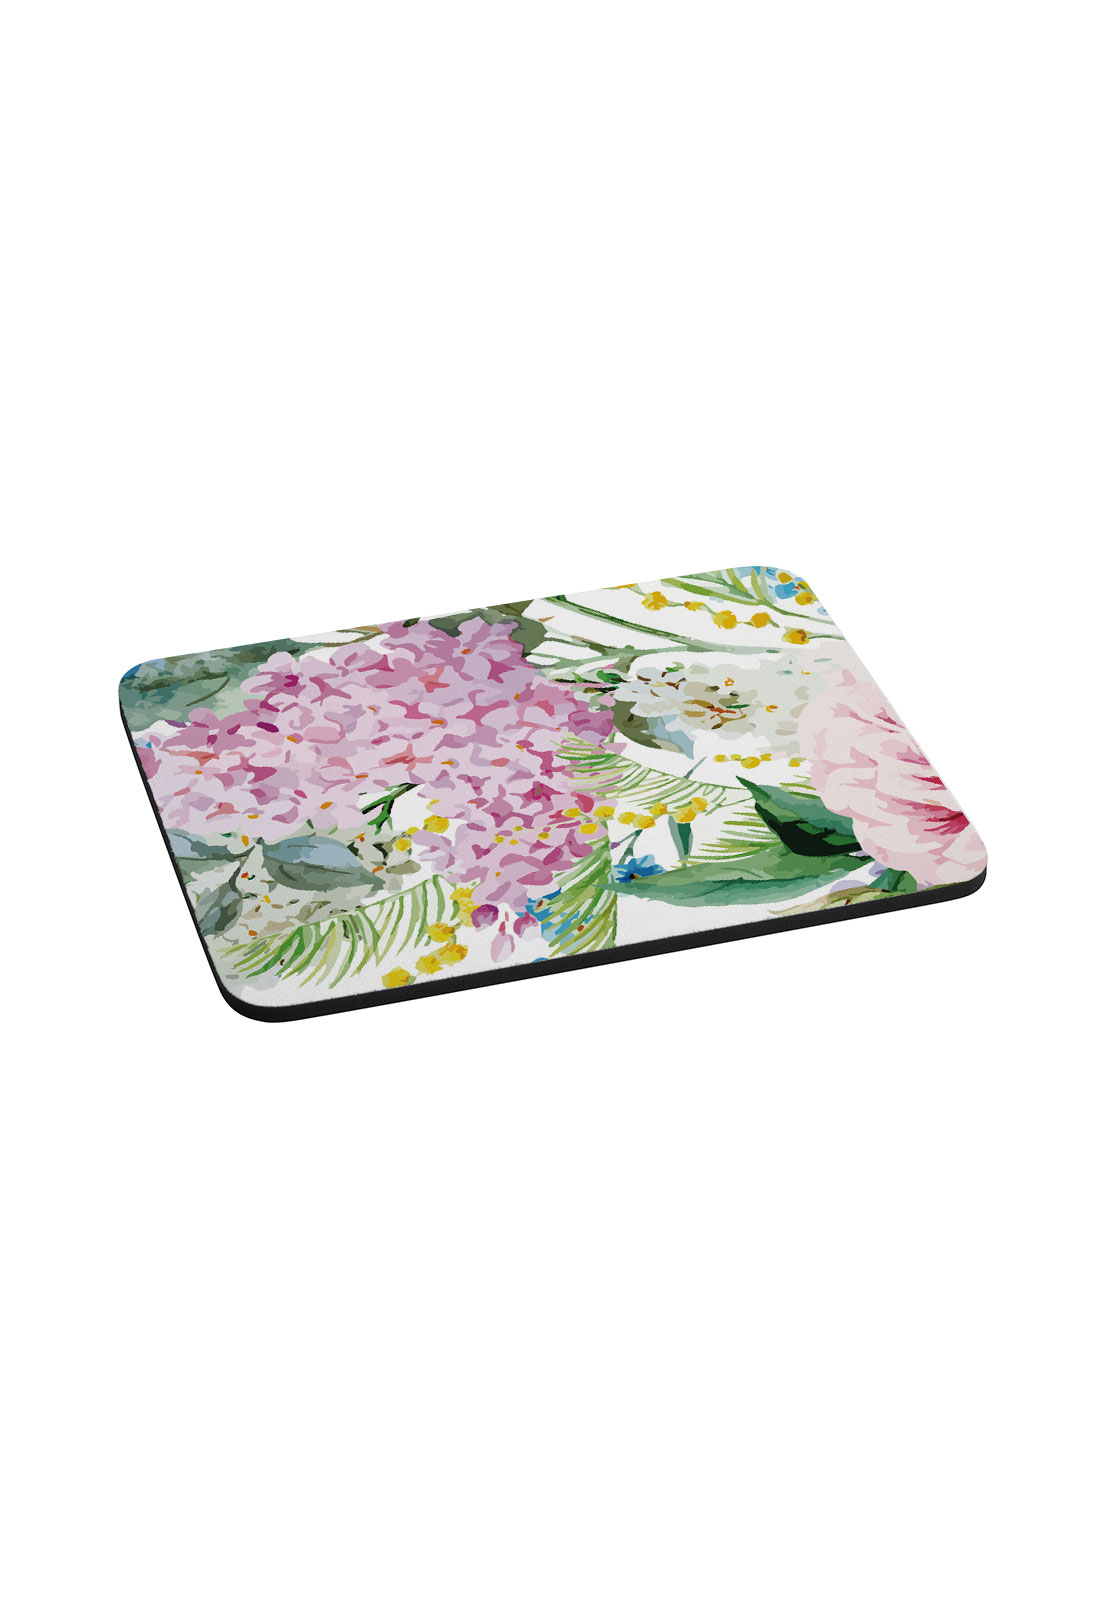 Mouse Pad Hortensias